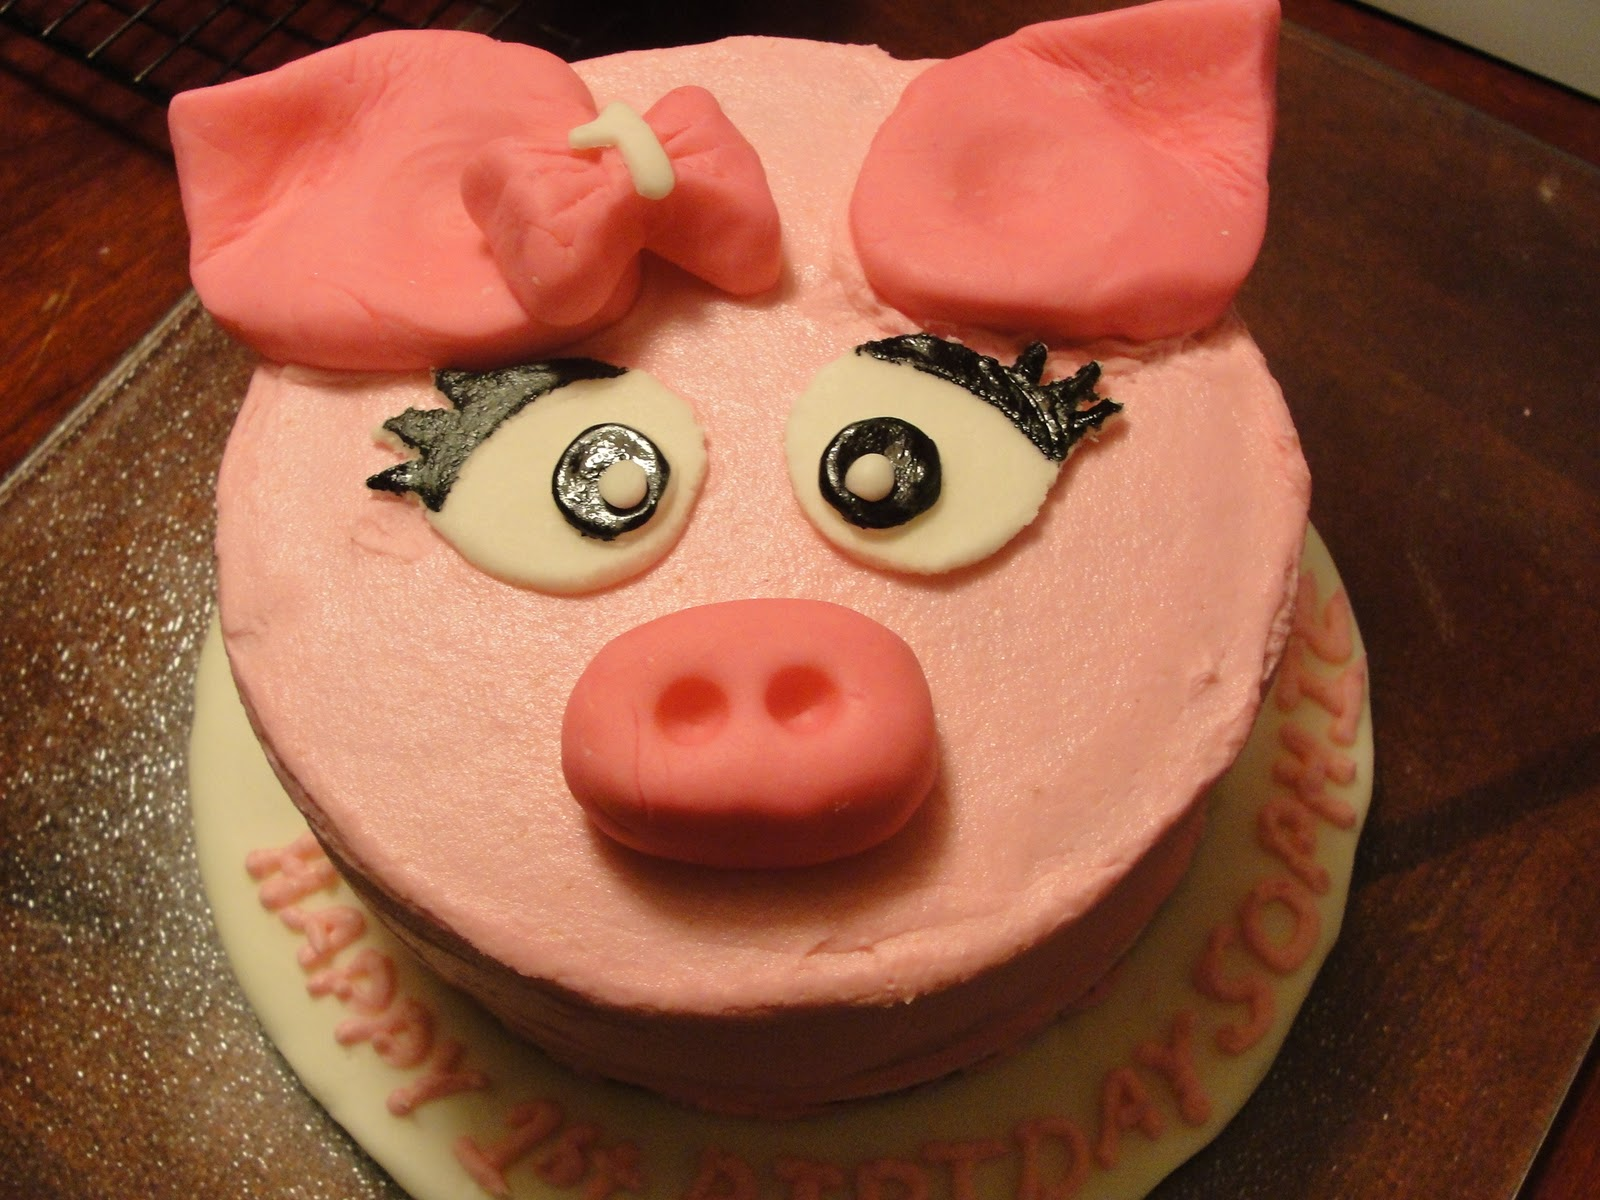 Baby pig eating cake - photo#14